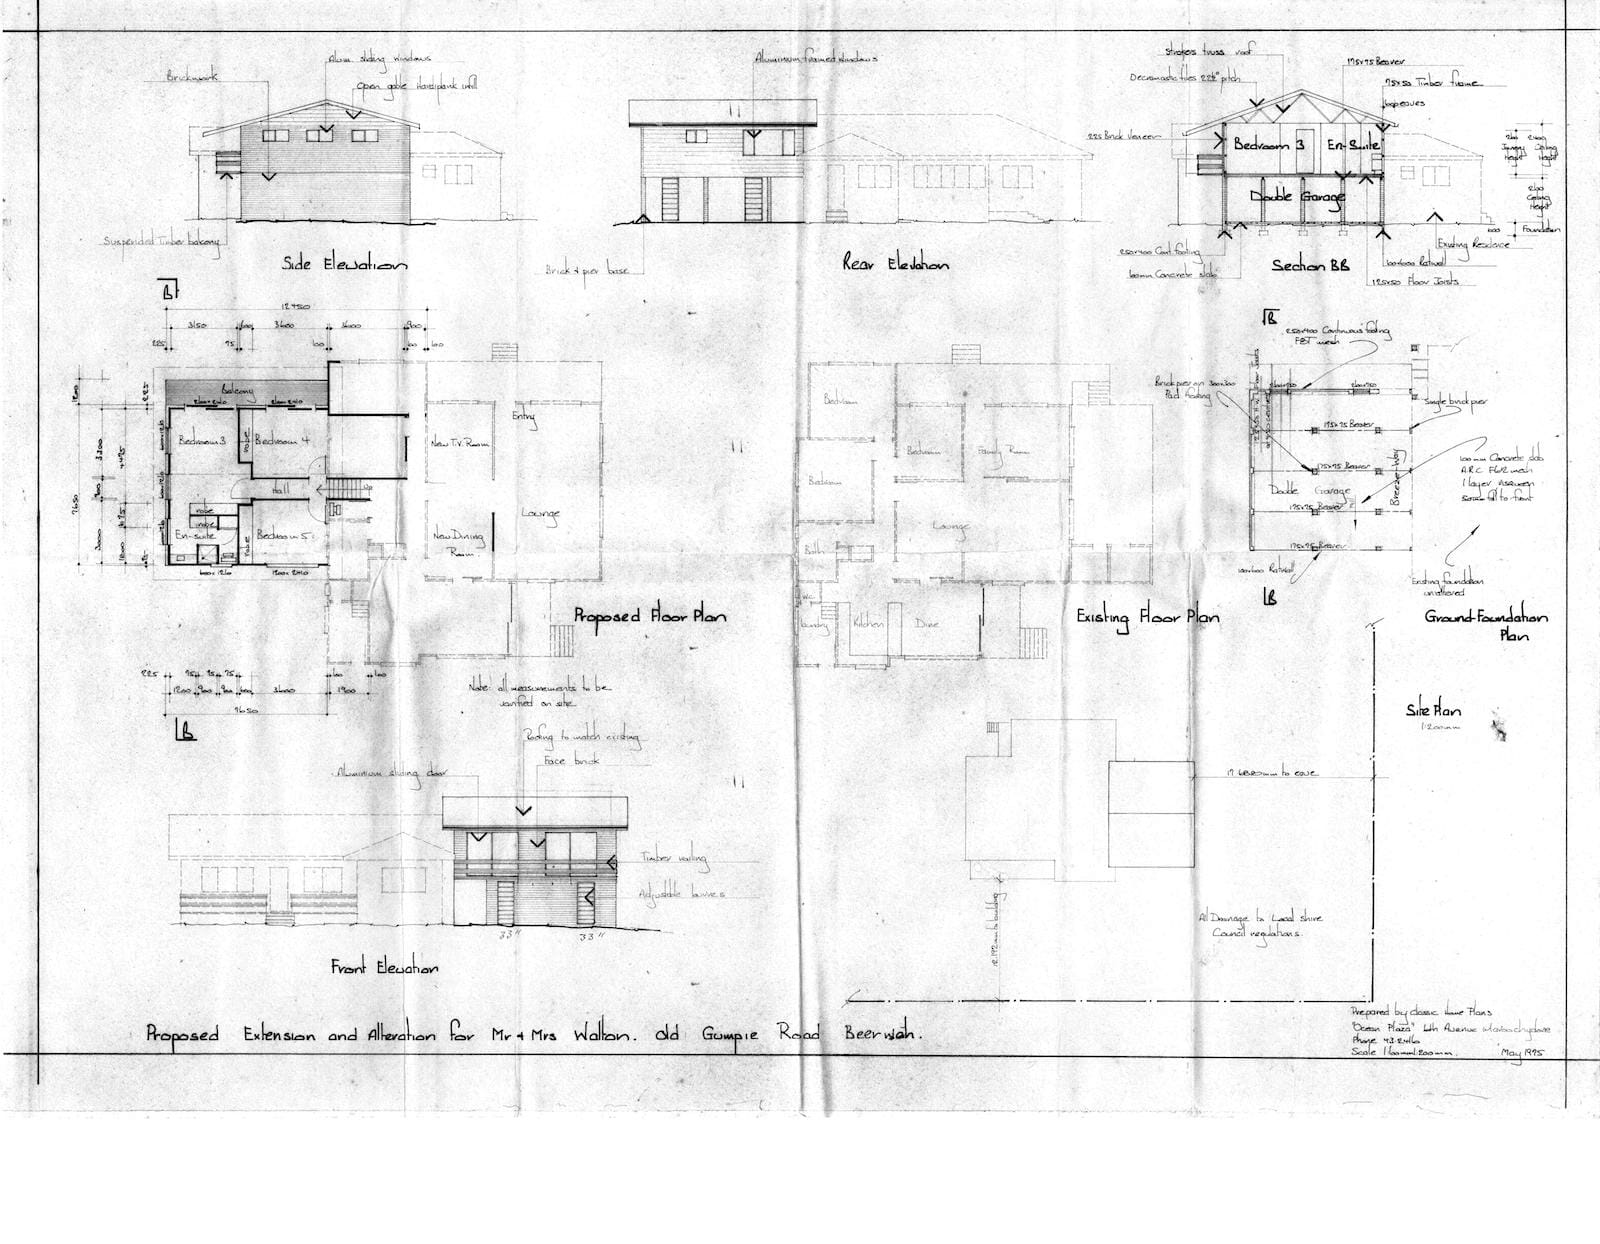 Small Cabins Page 2 Transportable Pod Homes Tiny Schematic Wiring Diagram September 2010 2768 House Plan 1600x1244